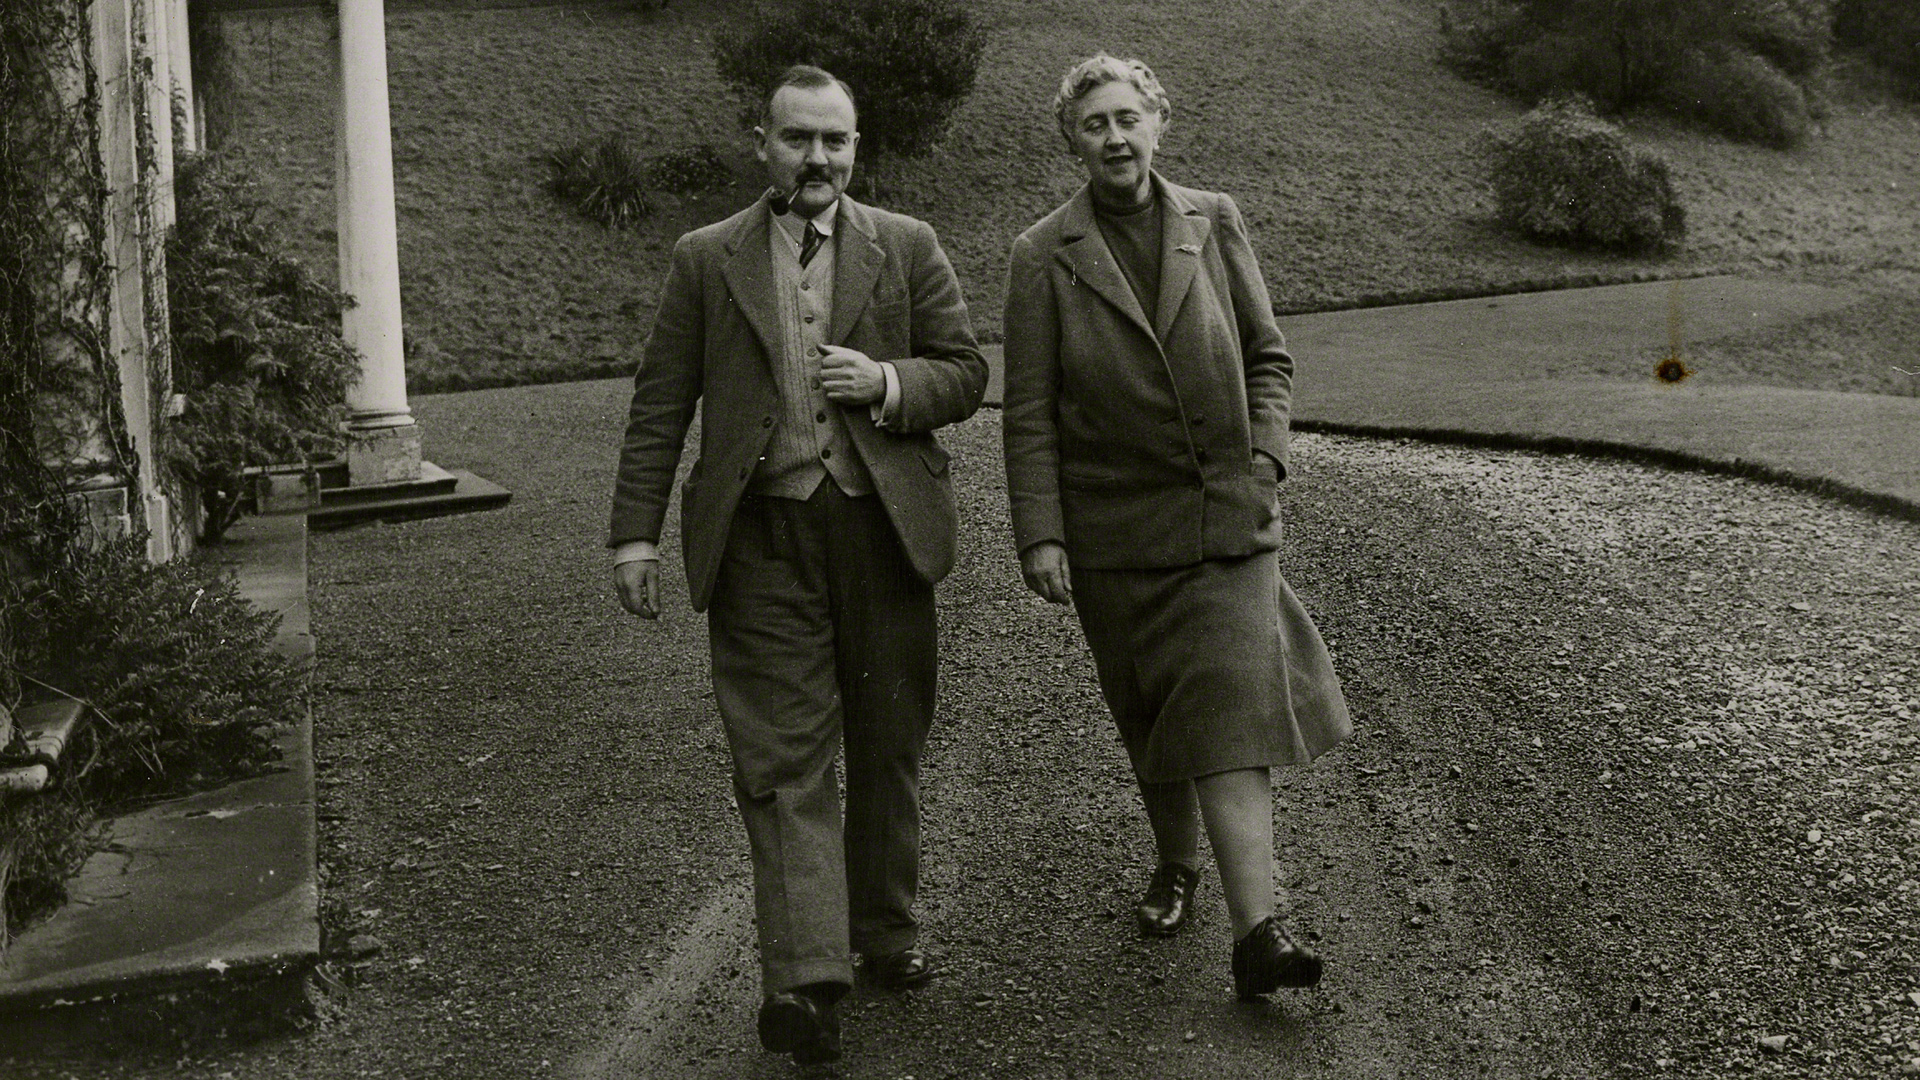 Agatha Christie (right) walks the grounds of Greenway, her beloved country home, with her second husband Max Mallowan.